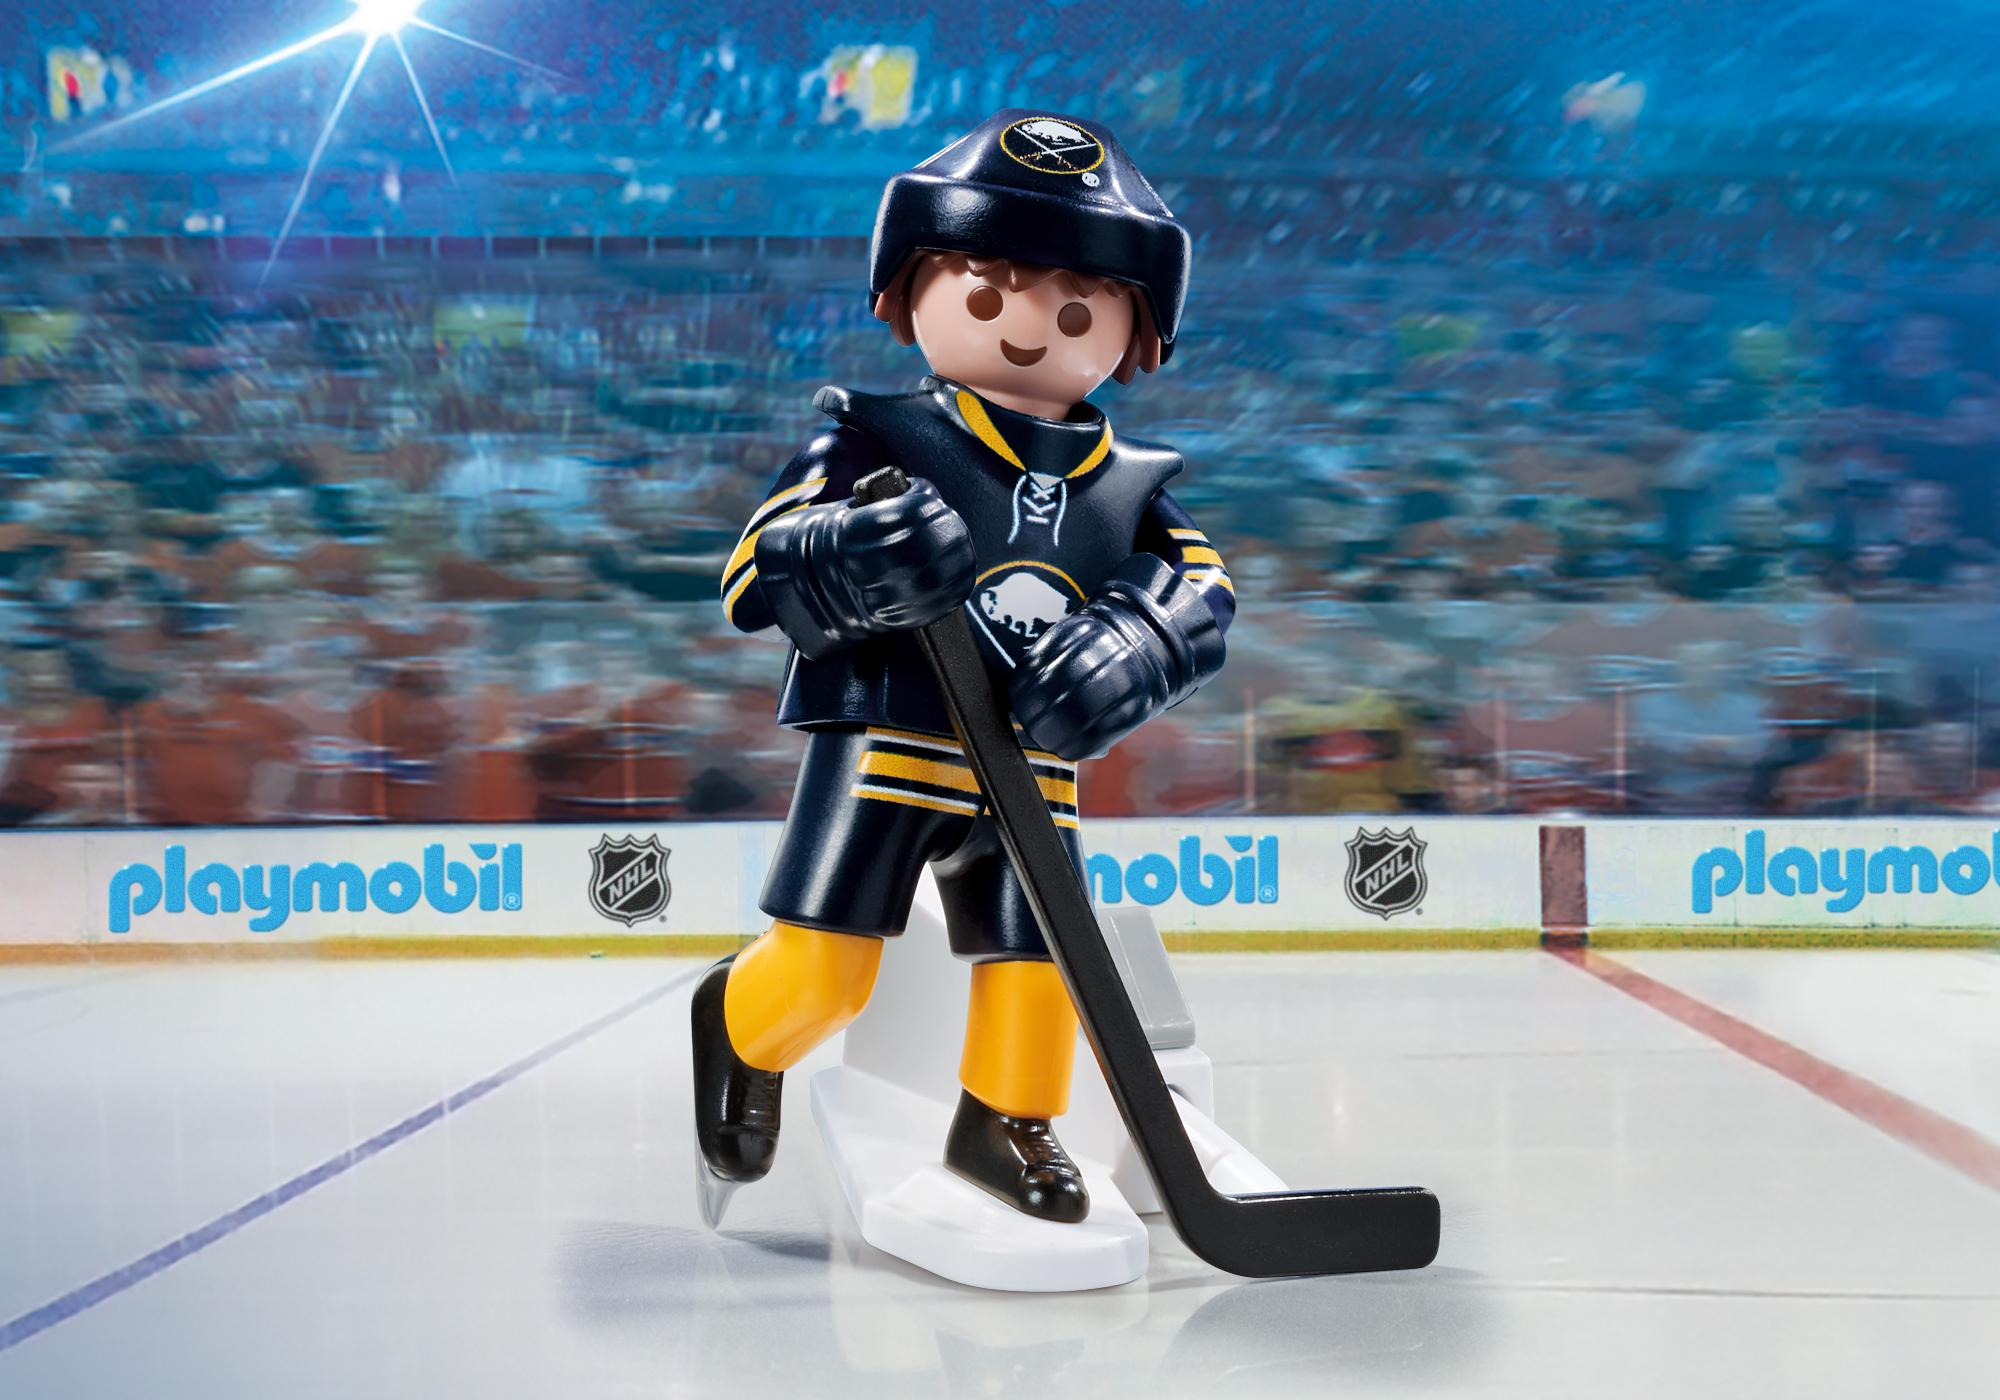 graphic regarding Sabres Schedule Printable referred to as NHL® Buffalo Sabres® Participant - 9180 - PLAYMOBIL® United states of america